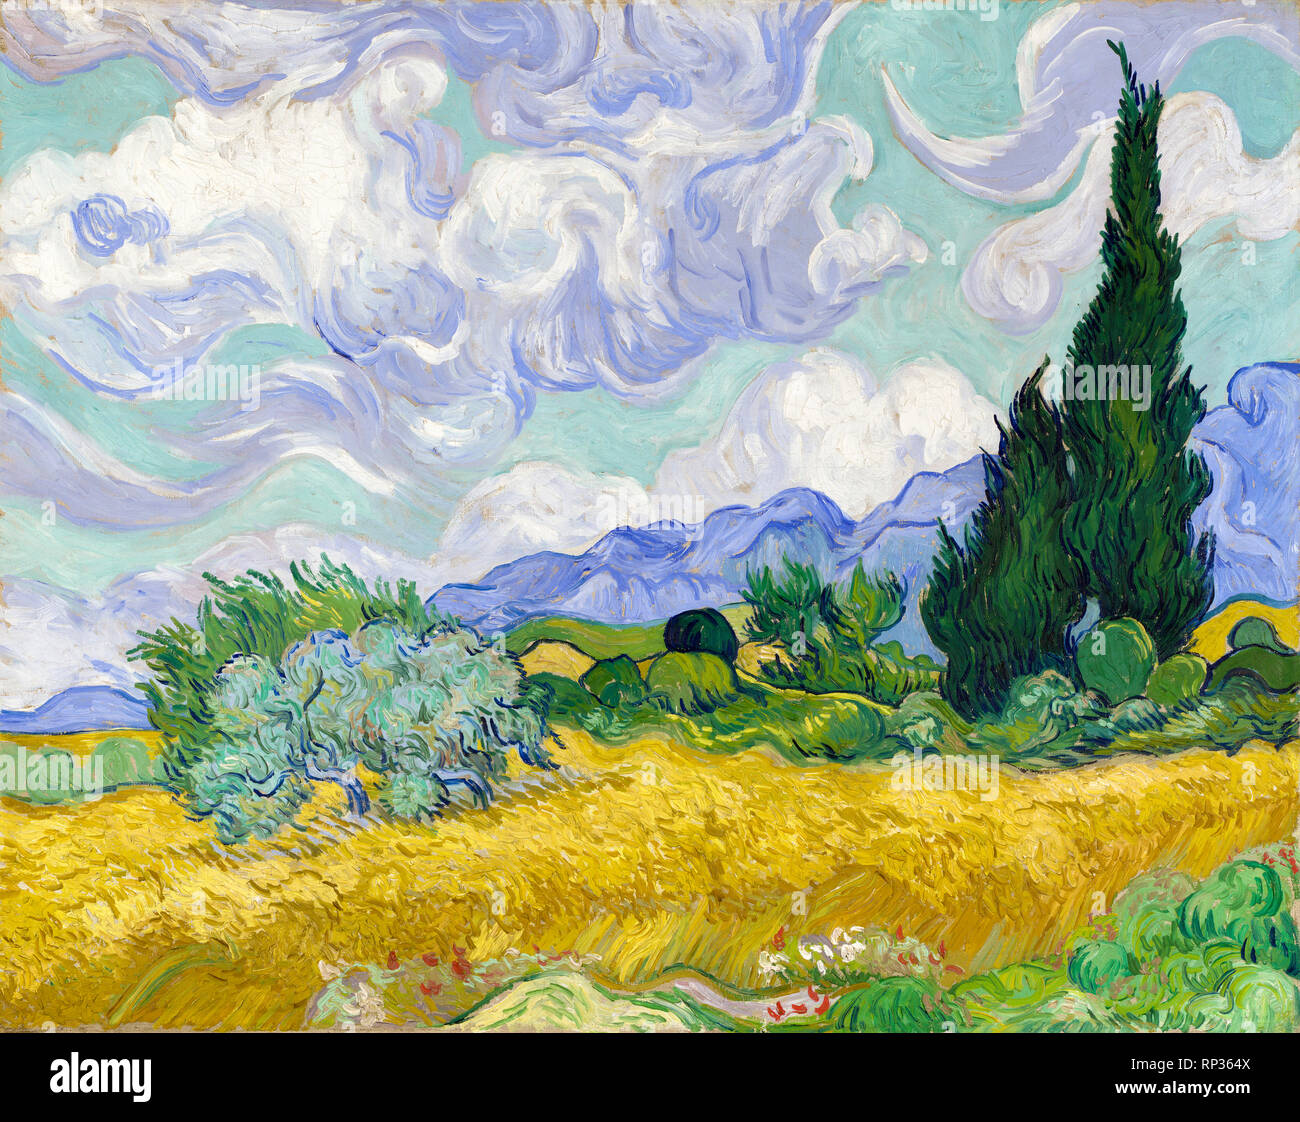 Wheat Field with Cypresses, Vincent Van Gogh, 1889, painting - Stock Image